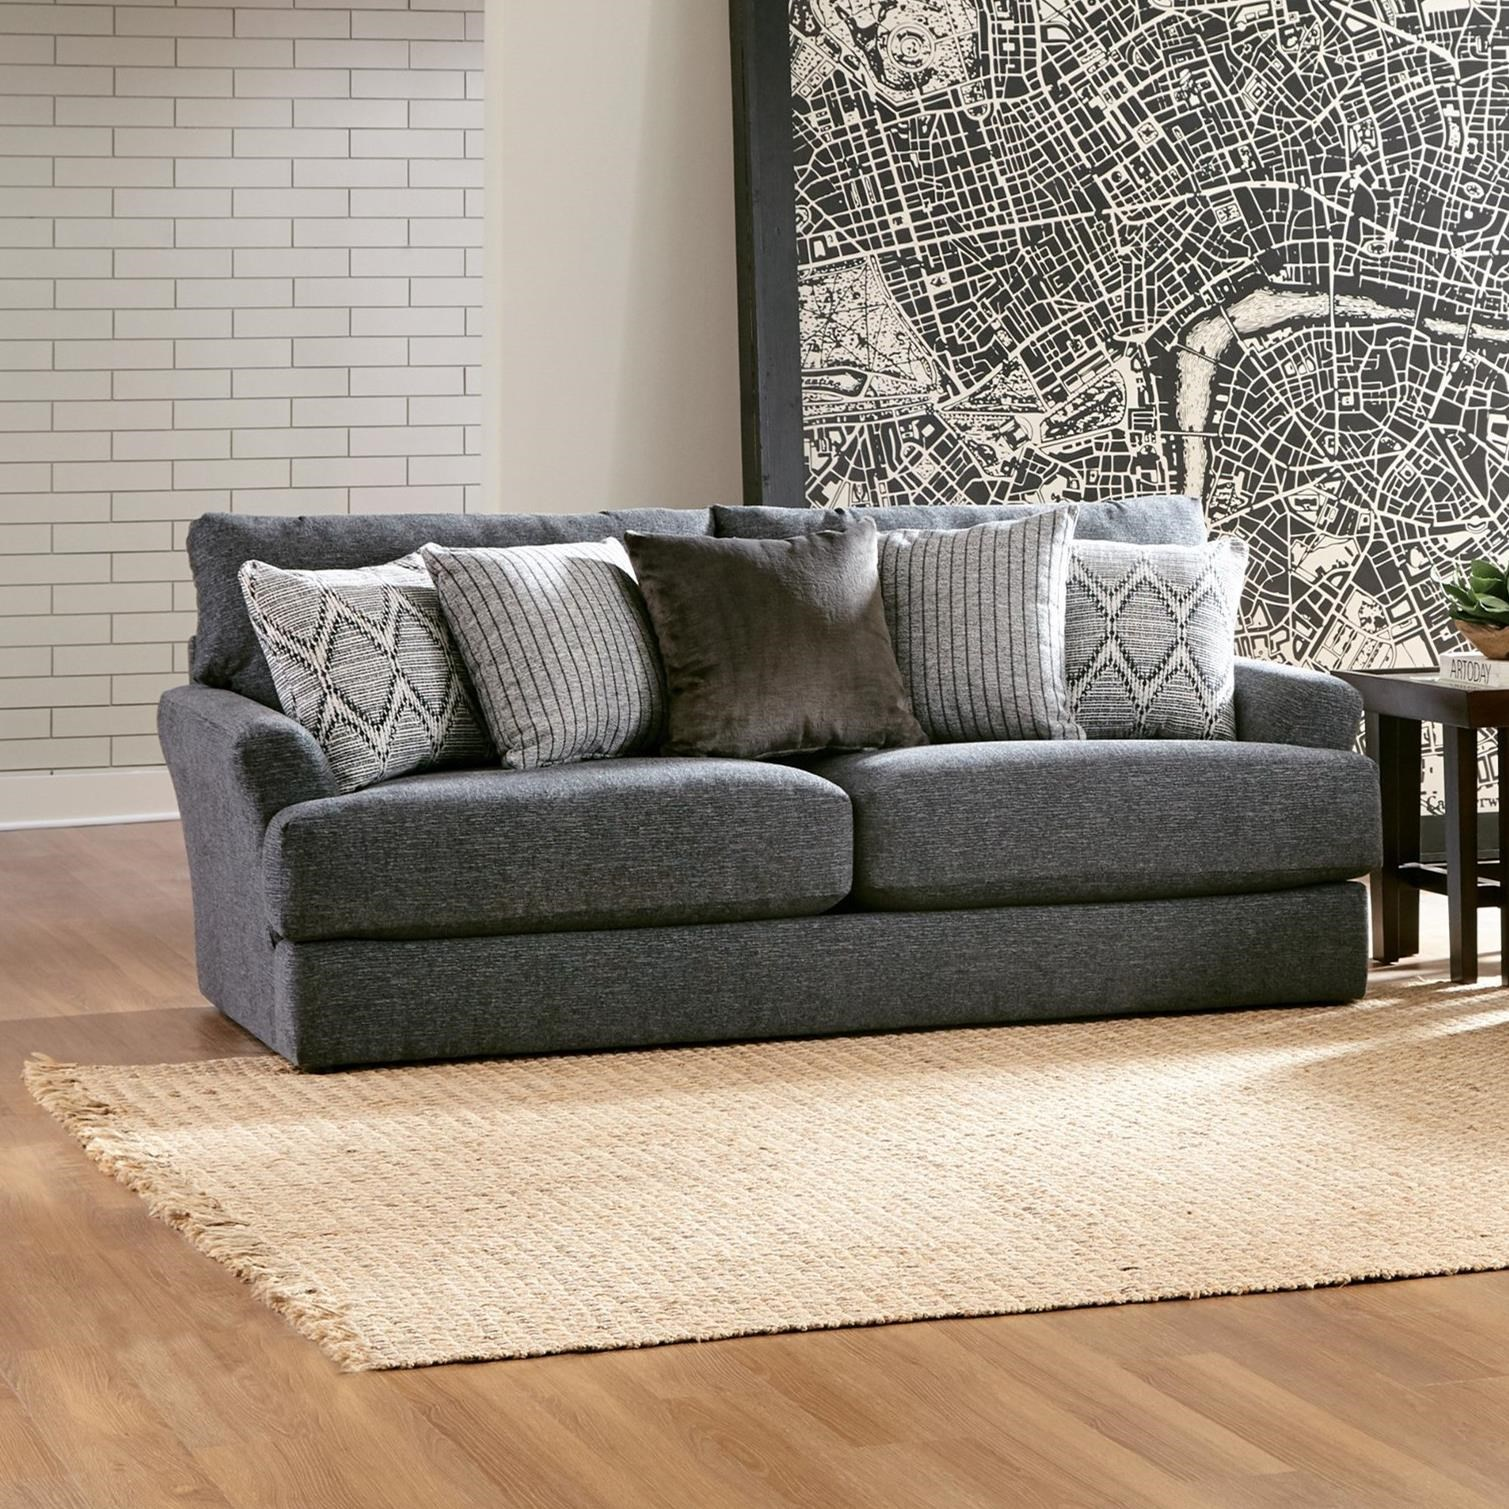 Howell Sofa by Jackson Furniture at Northeast Factory Direct